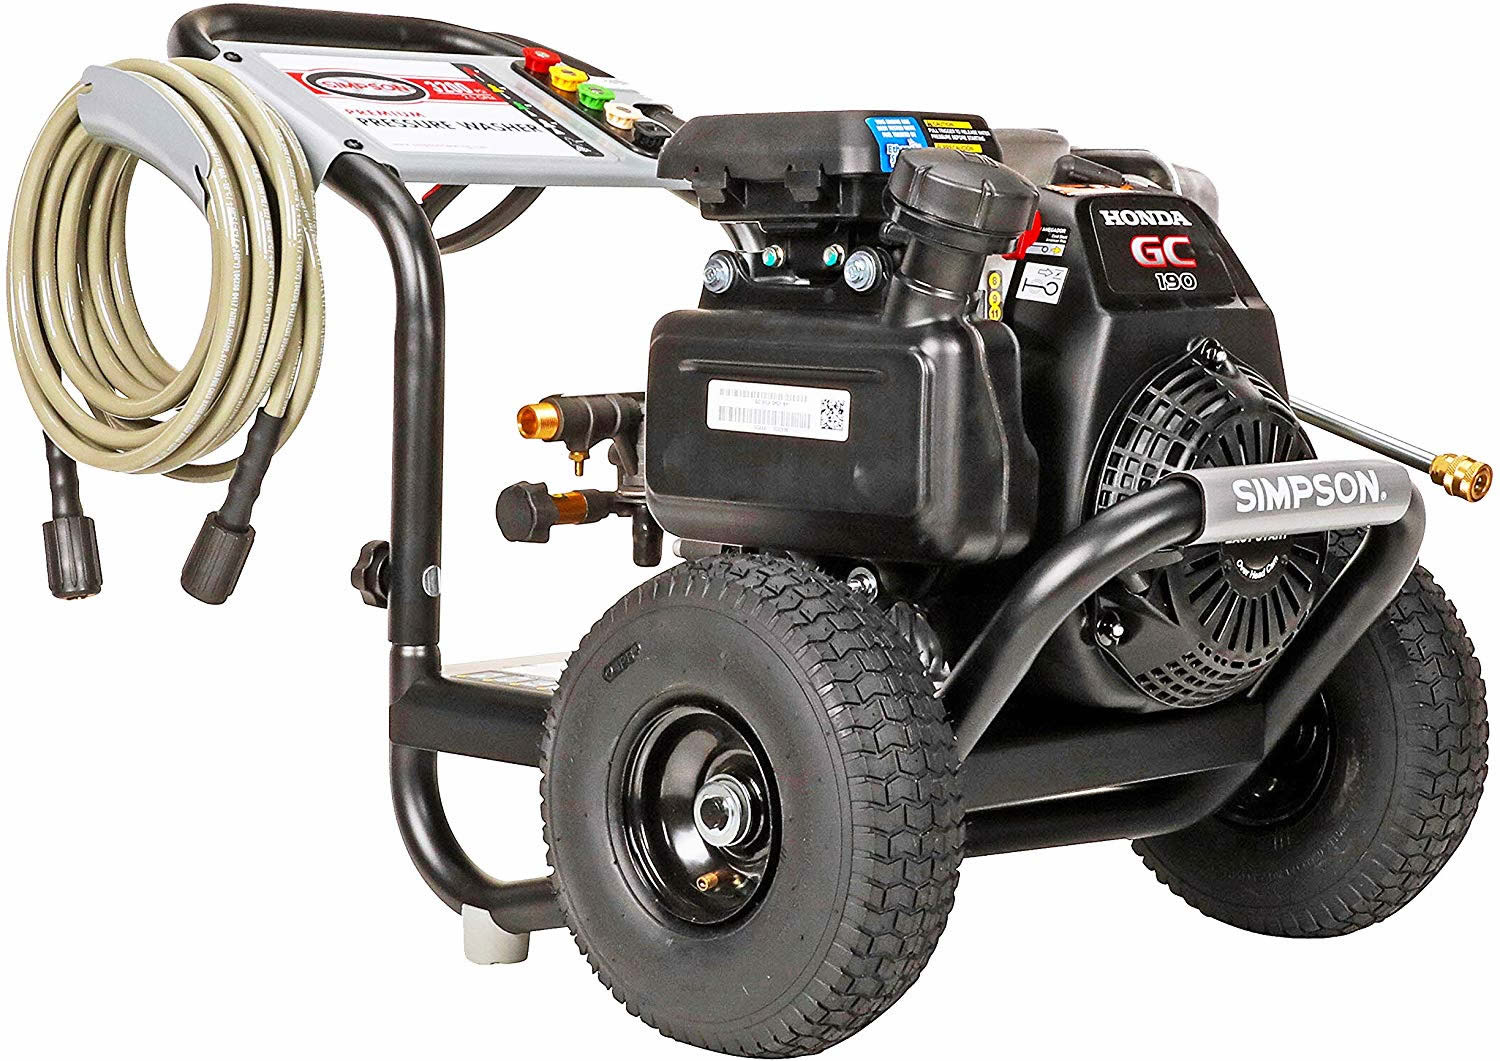 Pressure Washer Rental - 3200psi 2.5gpm Commercial